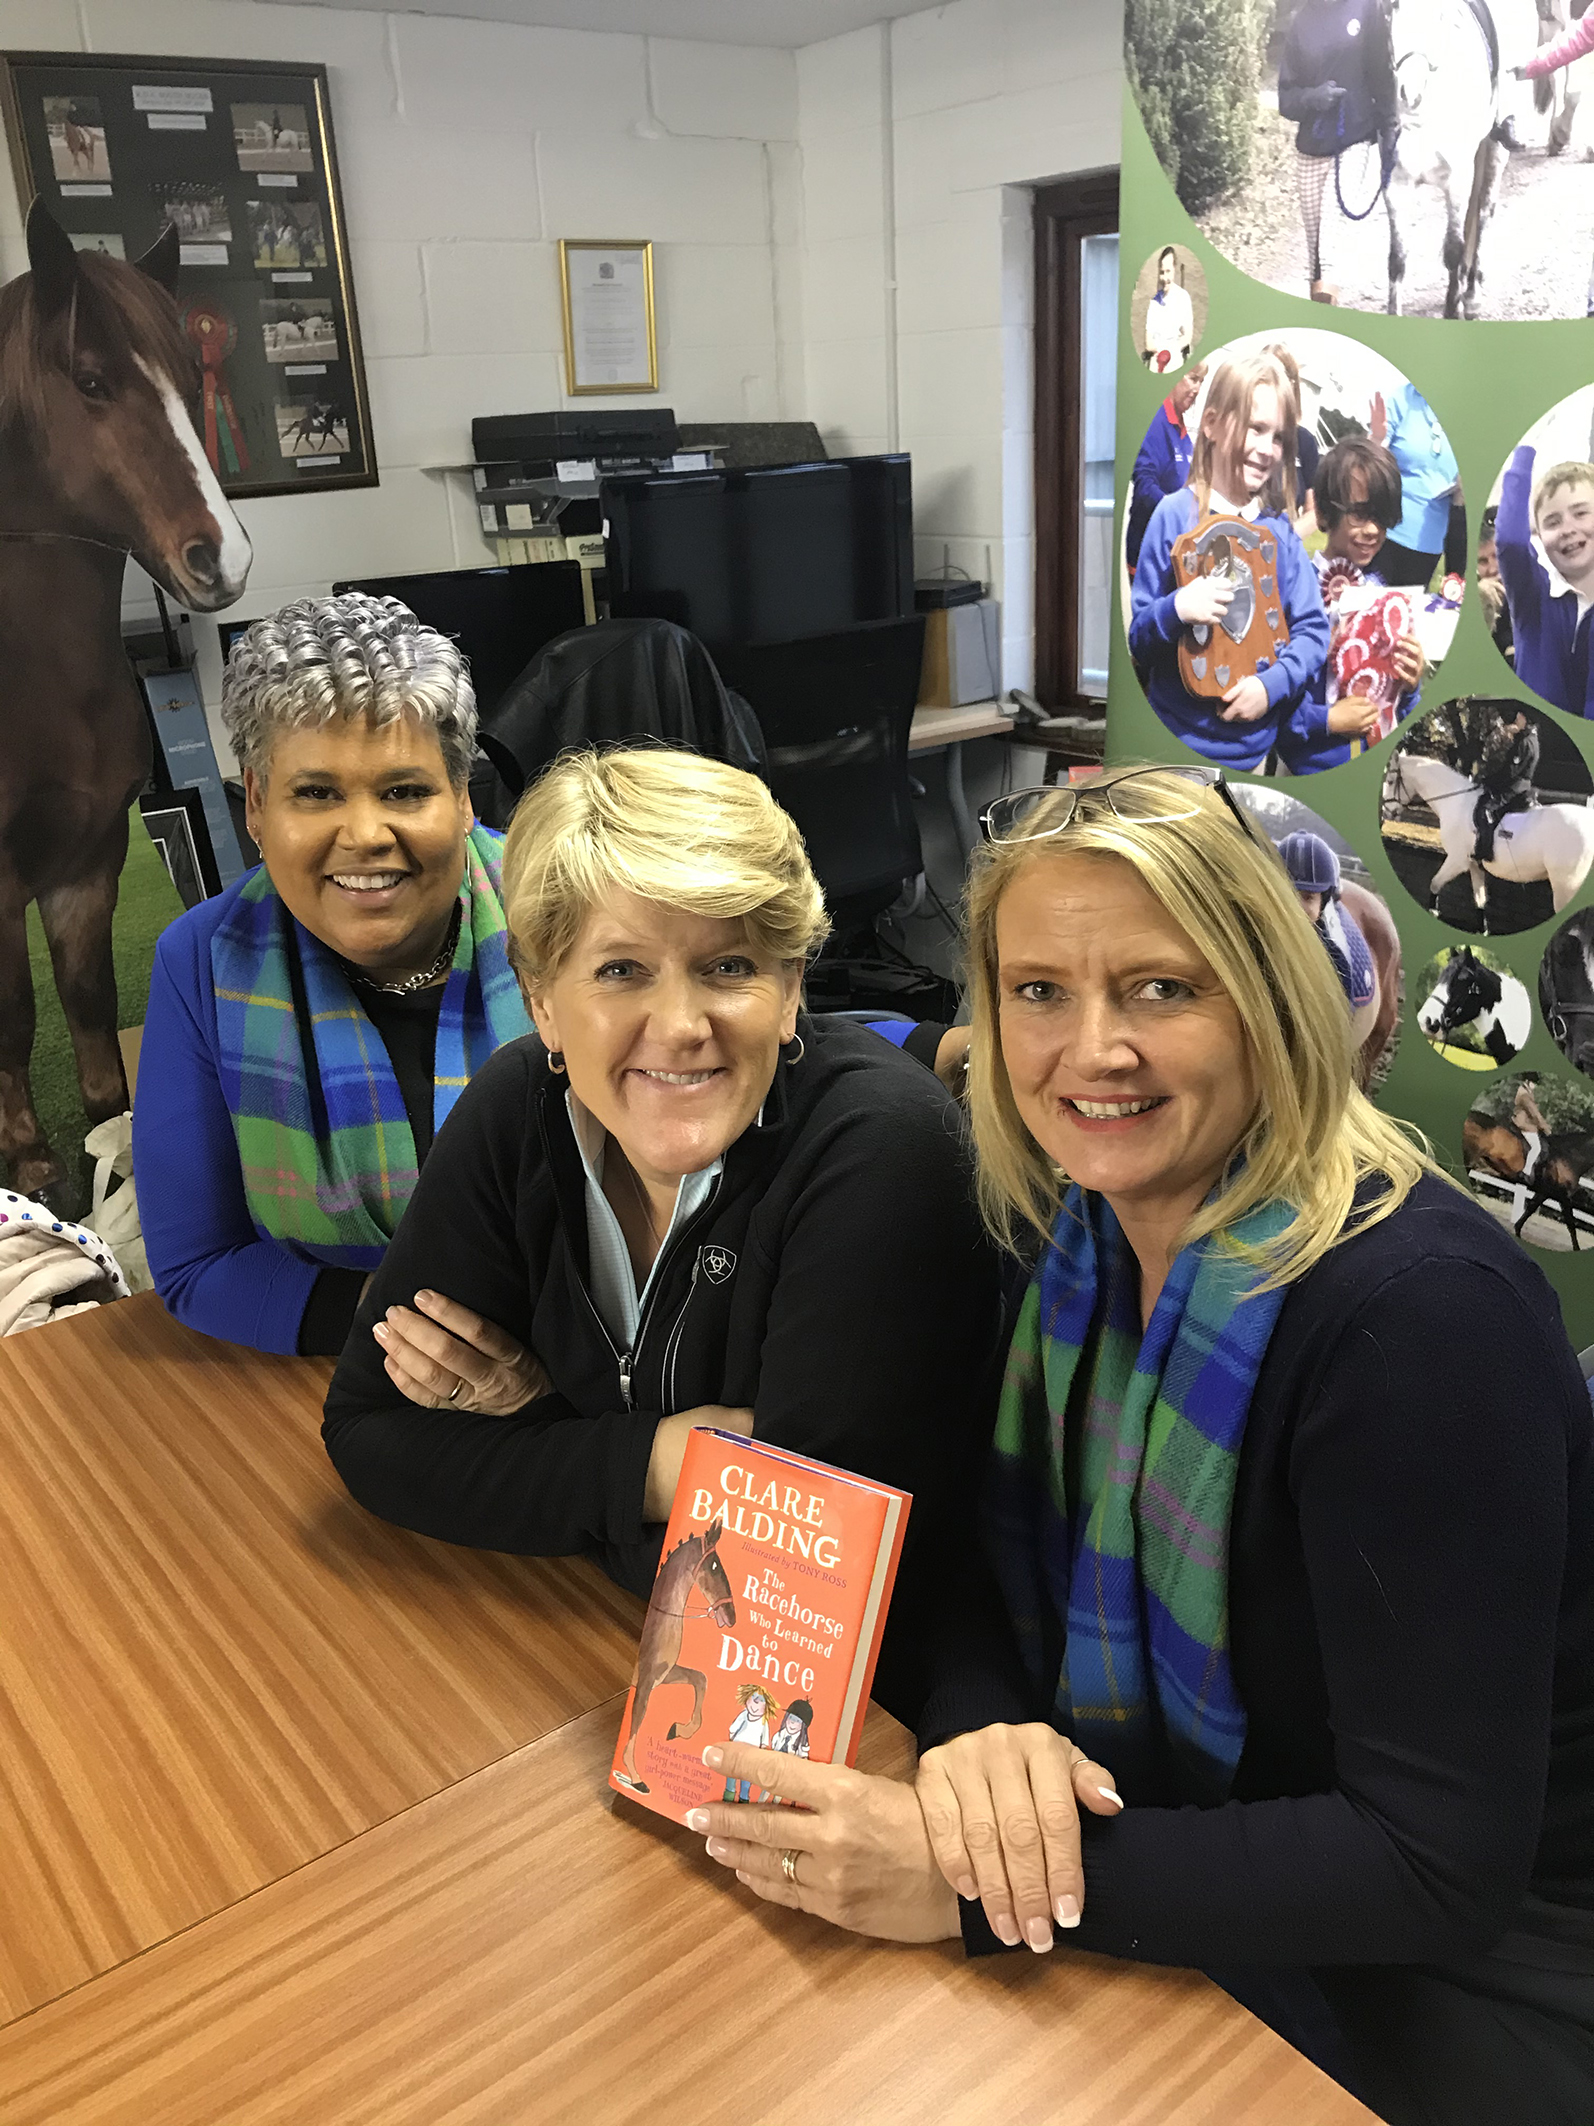 Clare Balding's New Book Comes Under Review From the Heart of RDA